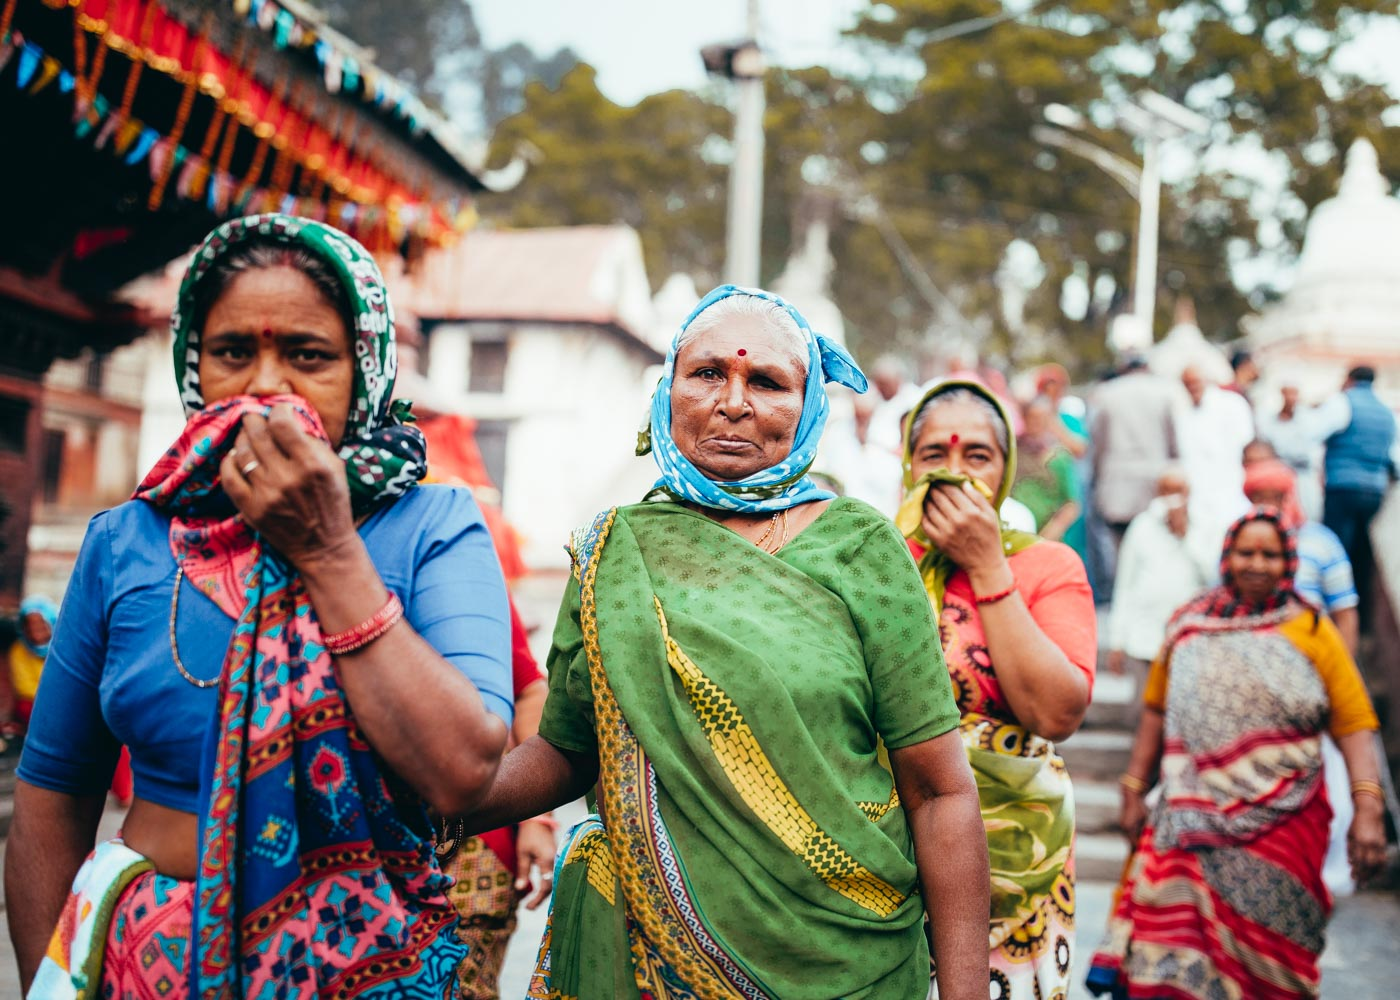 Chaotically cool: Street photography in Kathmandu • Pie